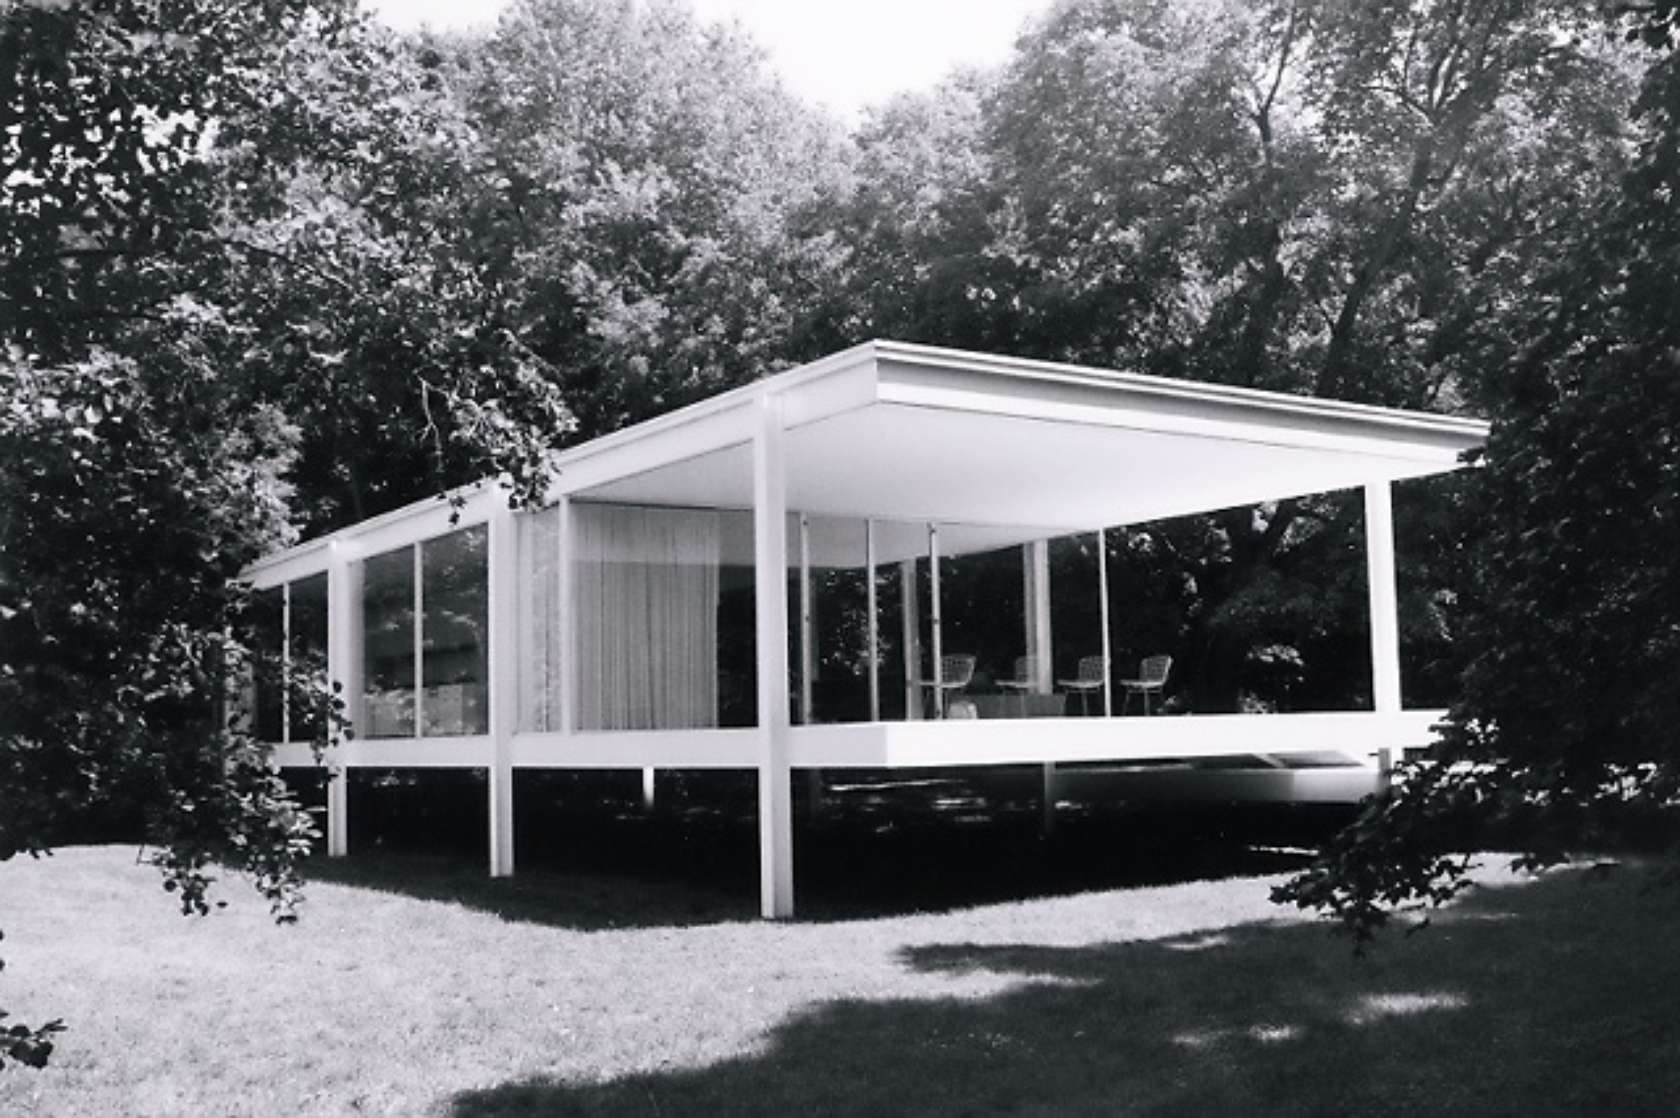 mies van der rohe 39 s farnsworth house a book by paul. Black Bedroom Furniture Sets. Home Design Ideas